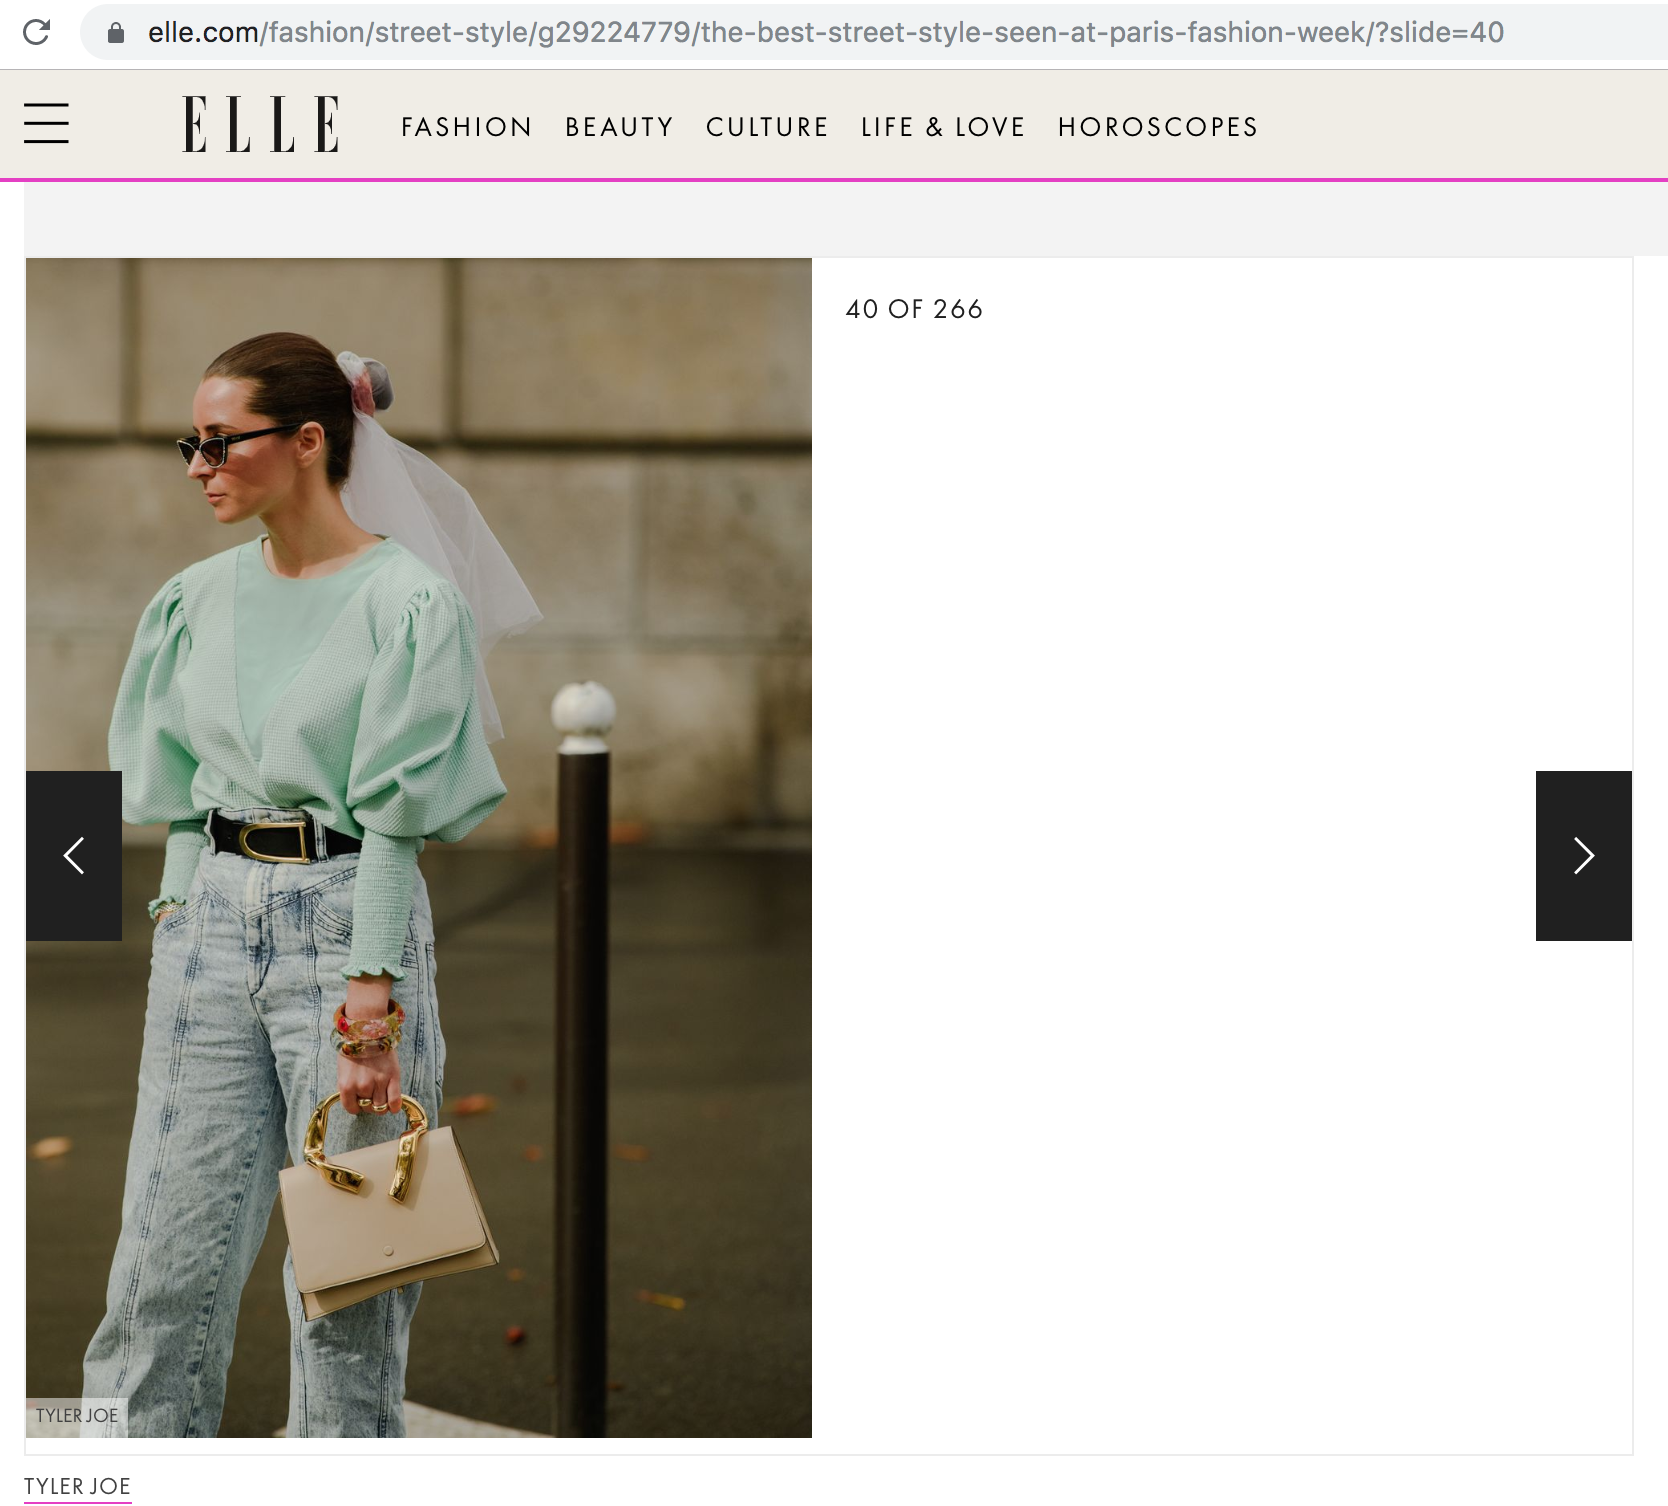 Elle US Paris Fashion Week Julia Comil French USA Fashion Blogger - The Best Street Style Looks From Paris Fashion Week